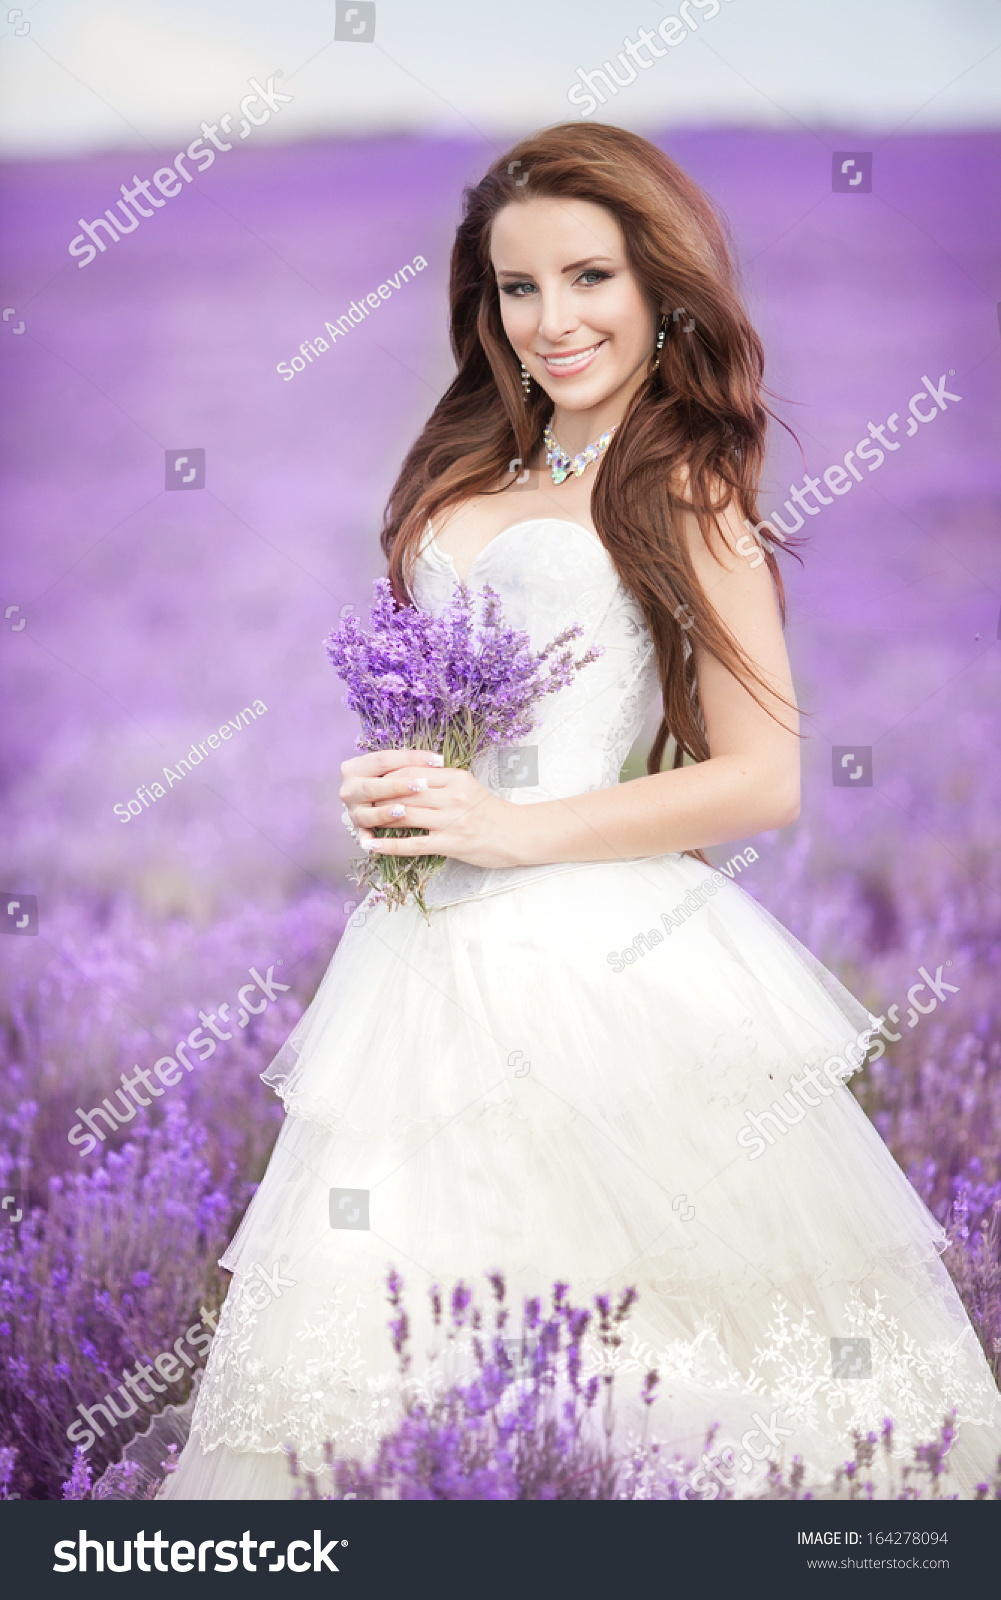 Beautiful Bride Wedding Day Lavender Field Stock Photo & Image ...